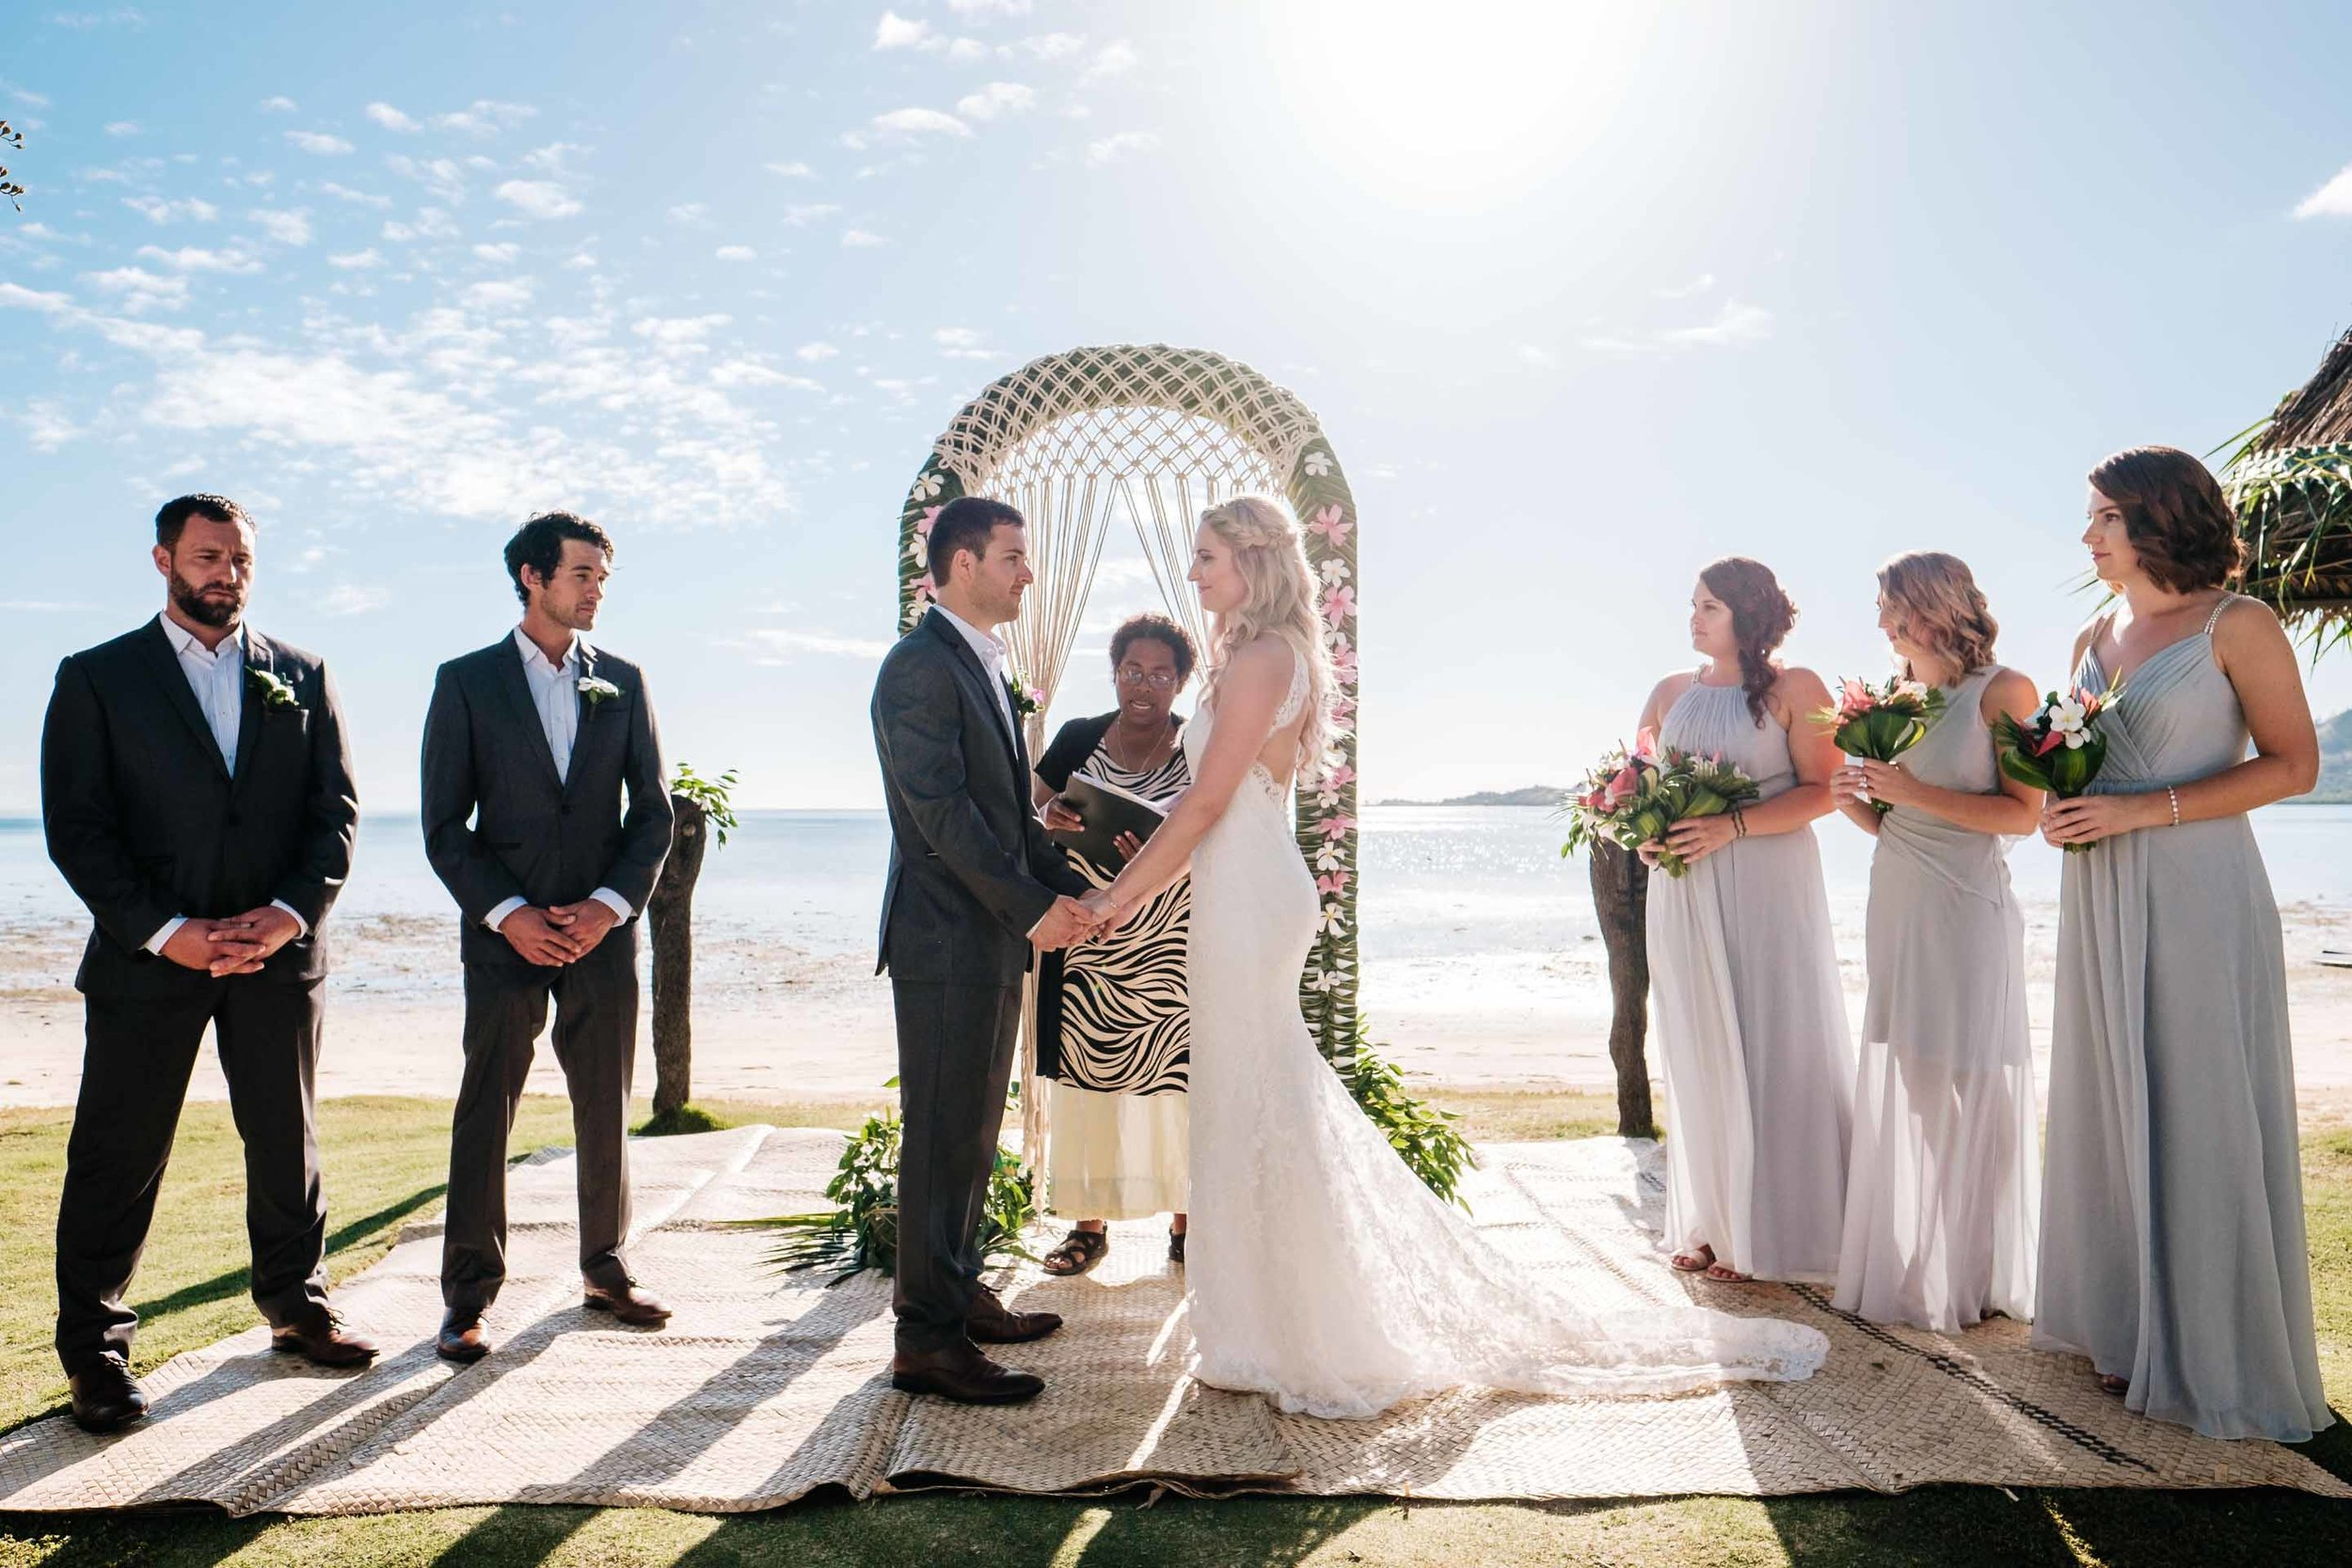 the bridal party at the wedding arch as the celebrant is about to conclude the ceremony